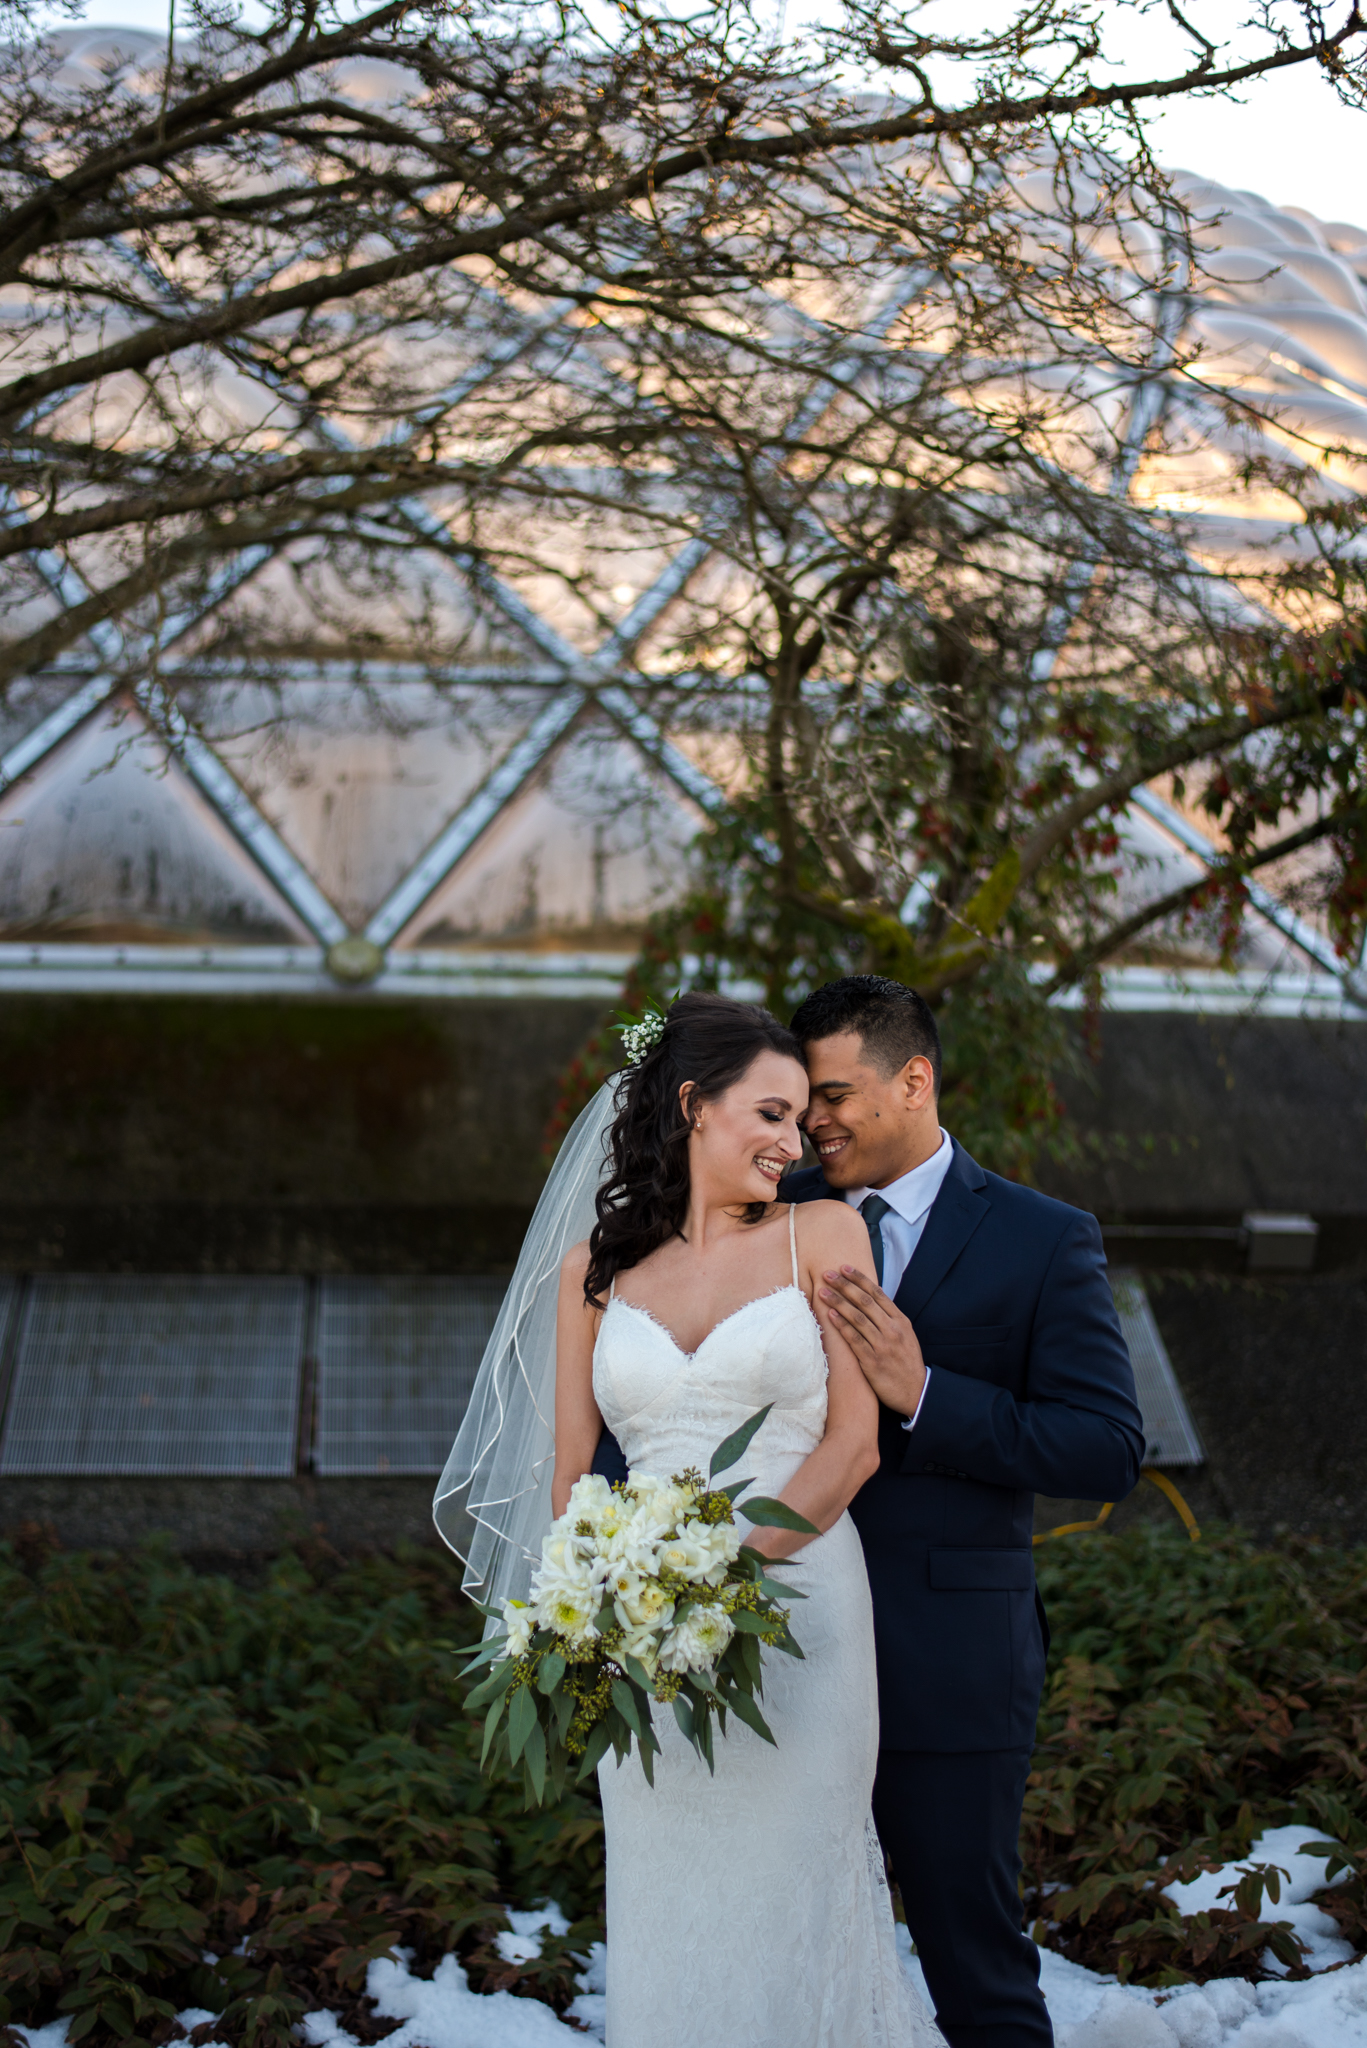 Queen Elizabeth Park Wedding Photographer-22.jpg